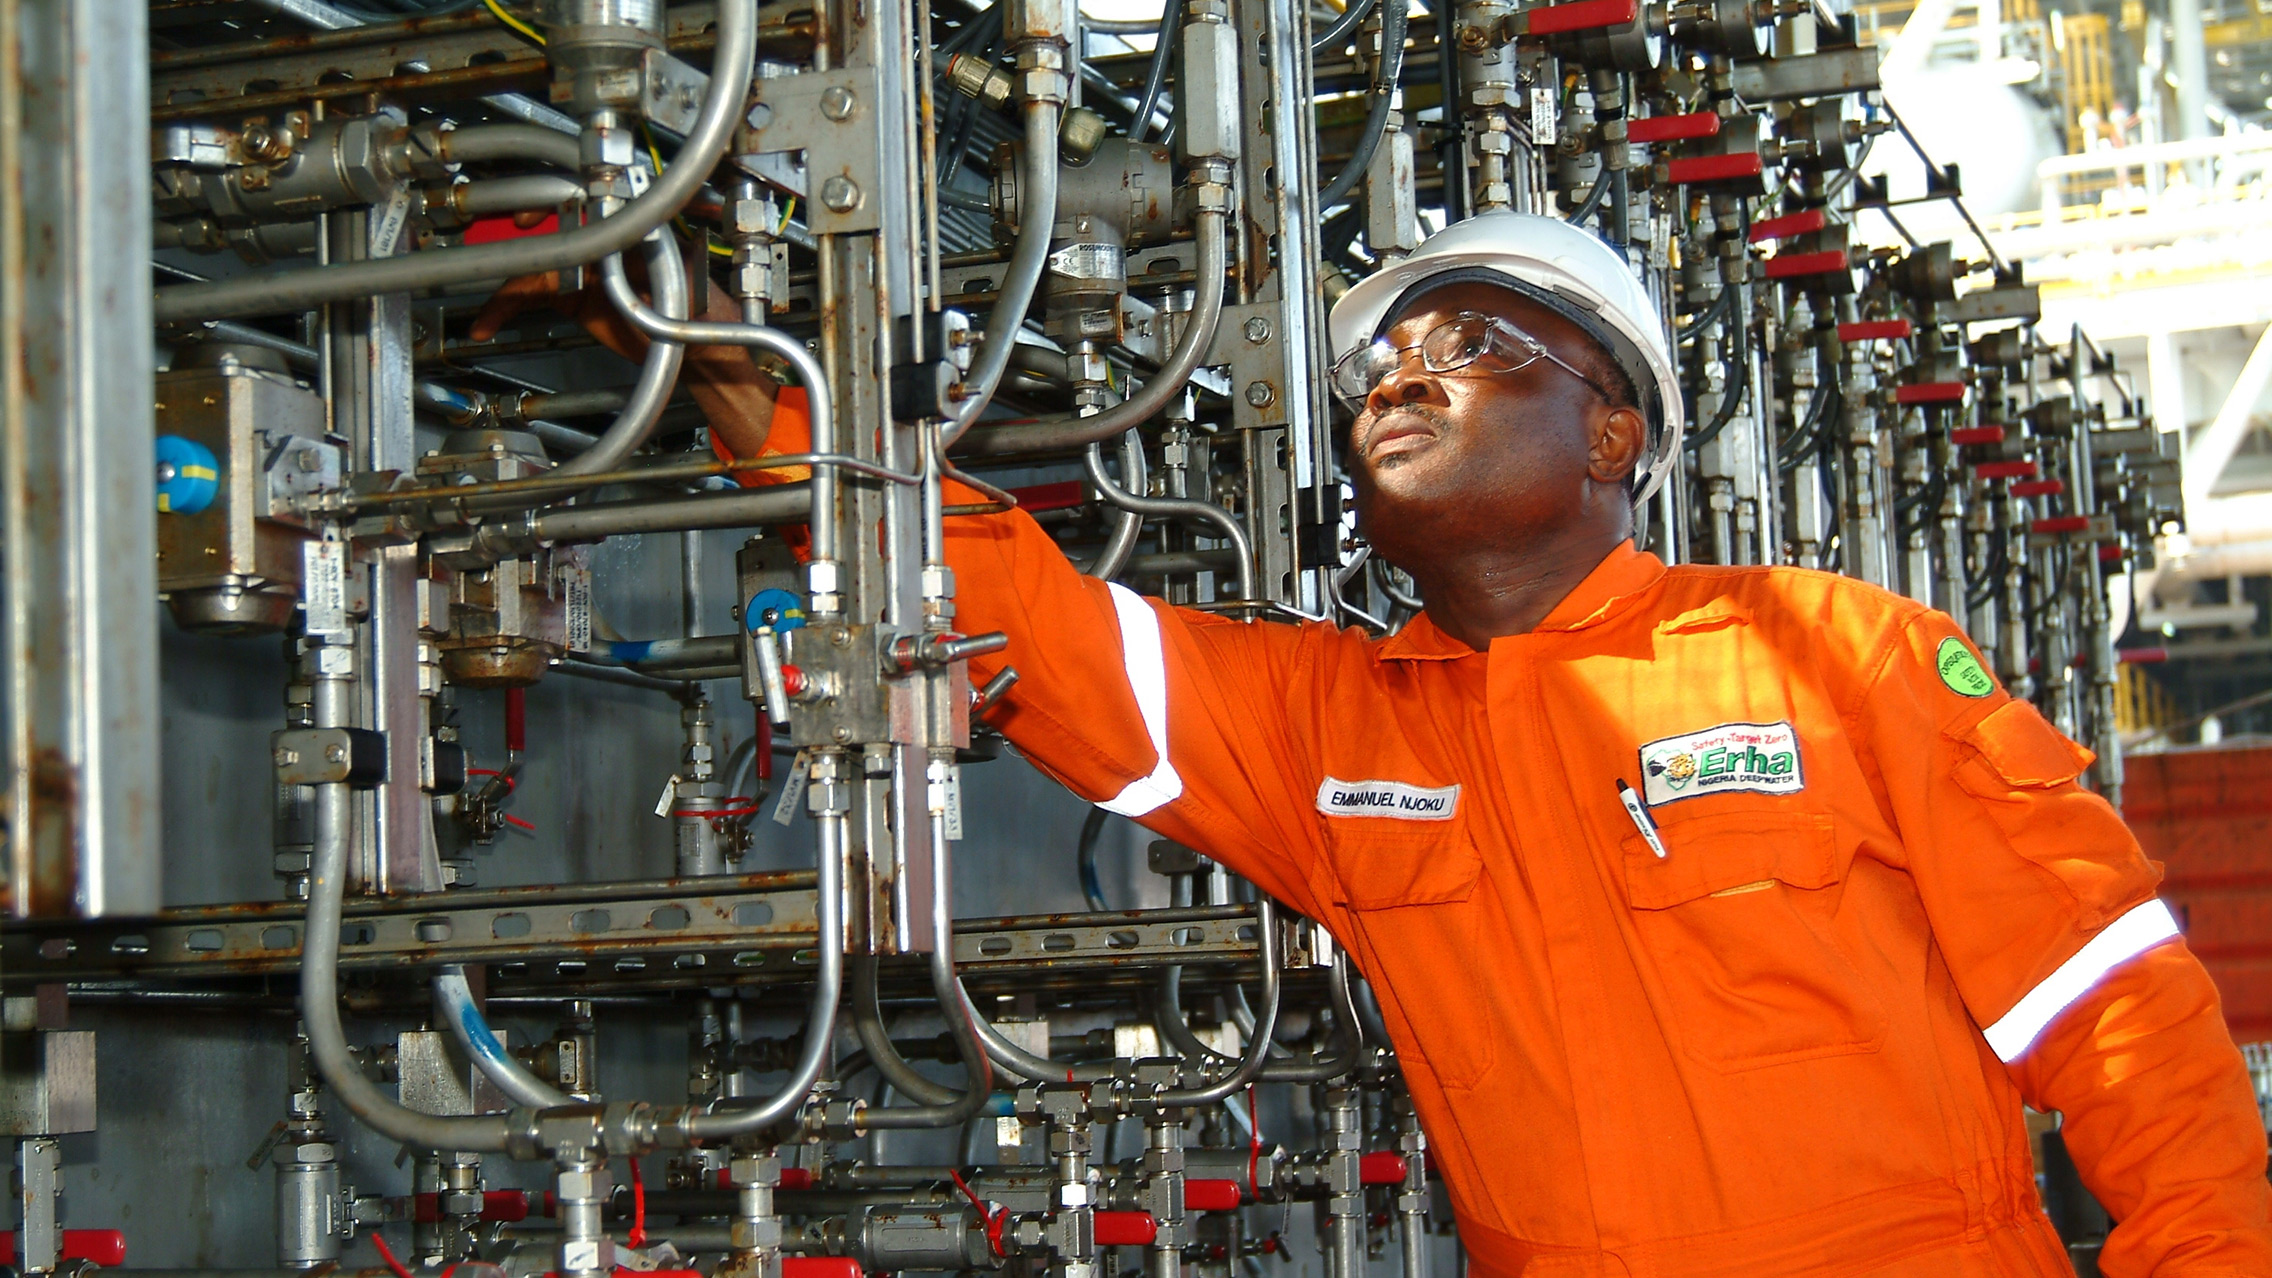 Nigeria's Independent Oil Giant to Invest $5 Billion to Increase Output